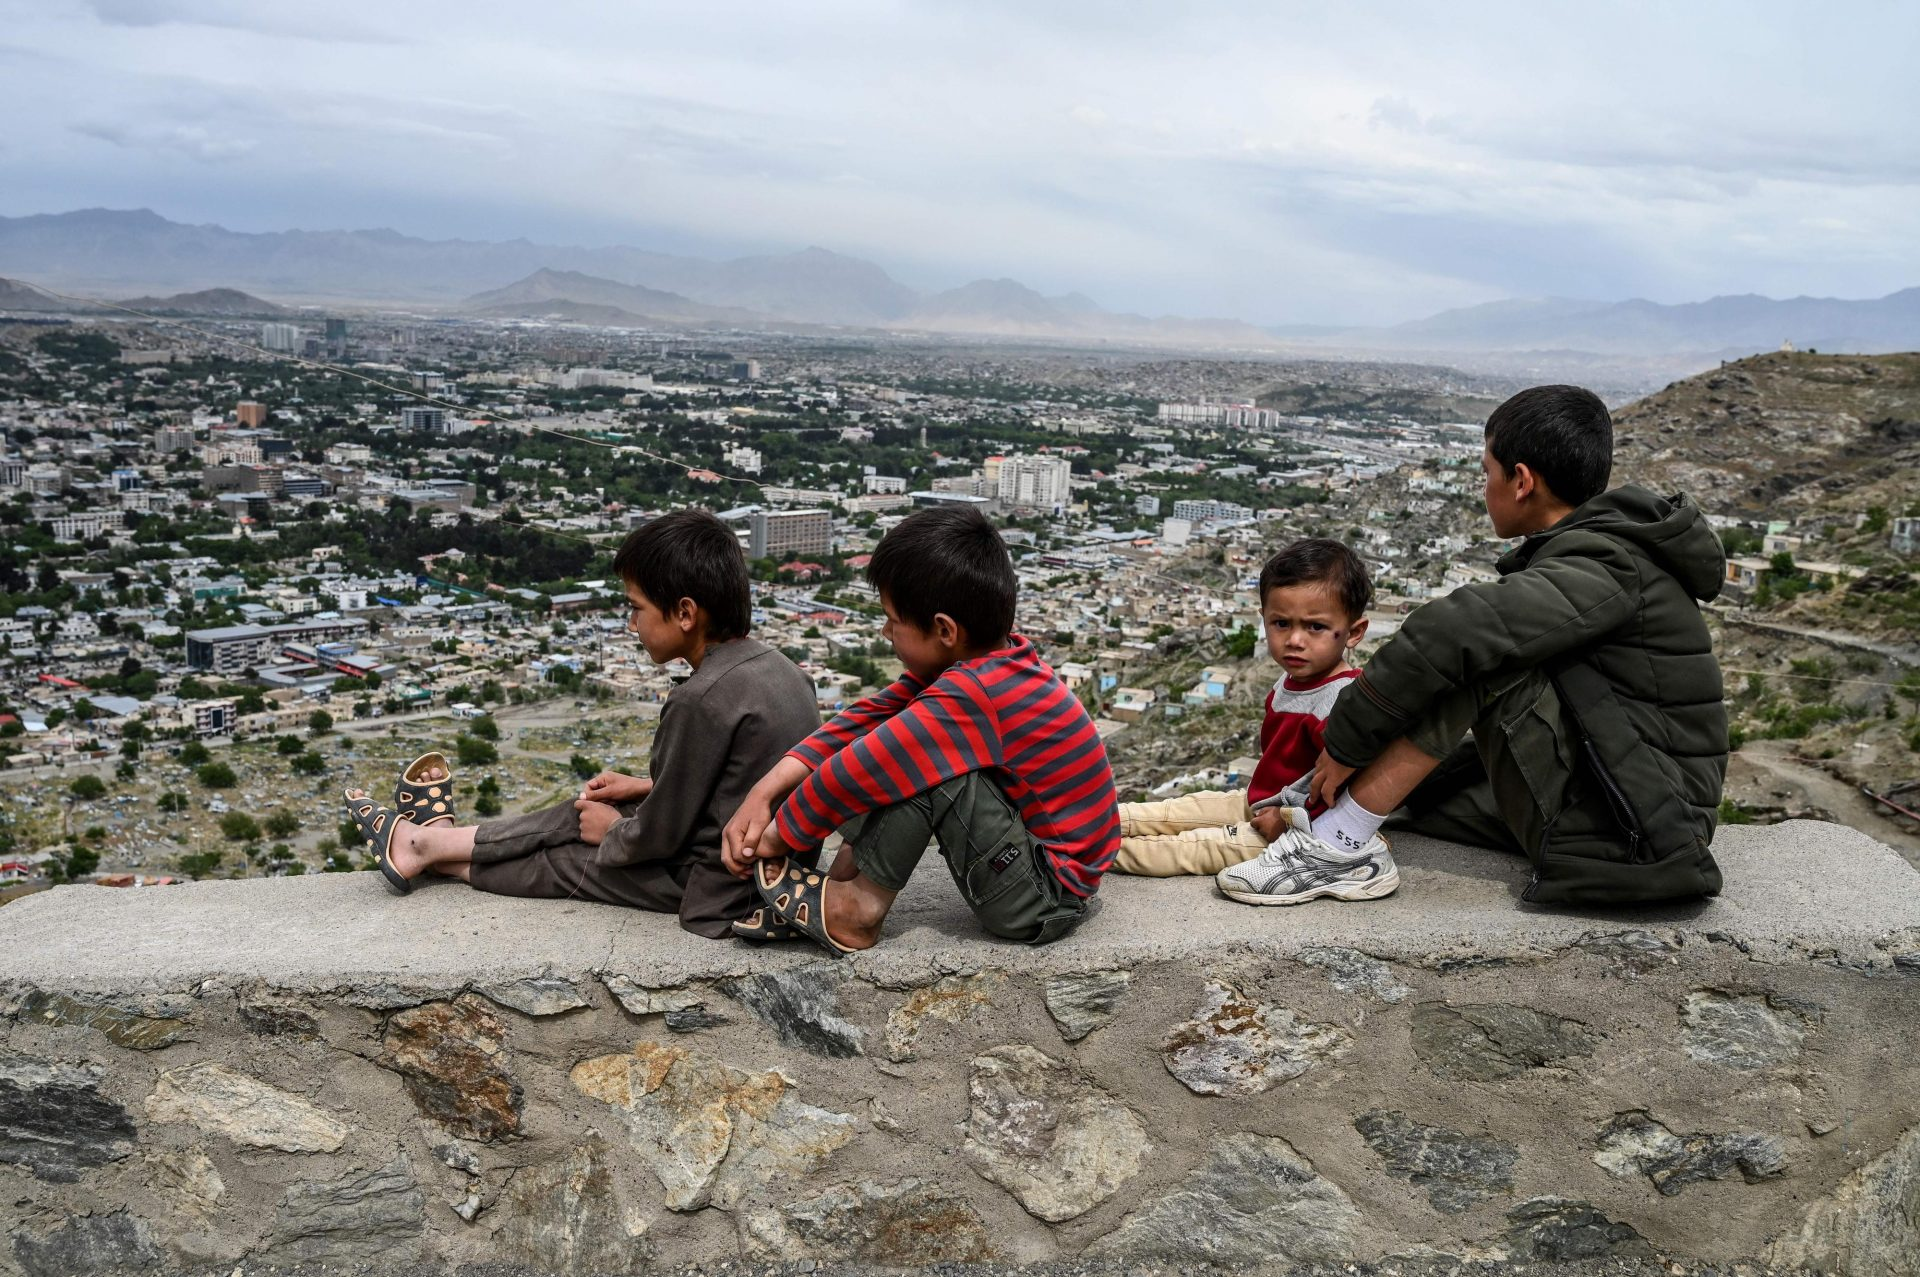 Children sit on a wall overlooking the city of Kabul,2020. Credit: WAKIL KOHSAR/AFP via Getty.